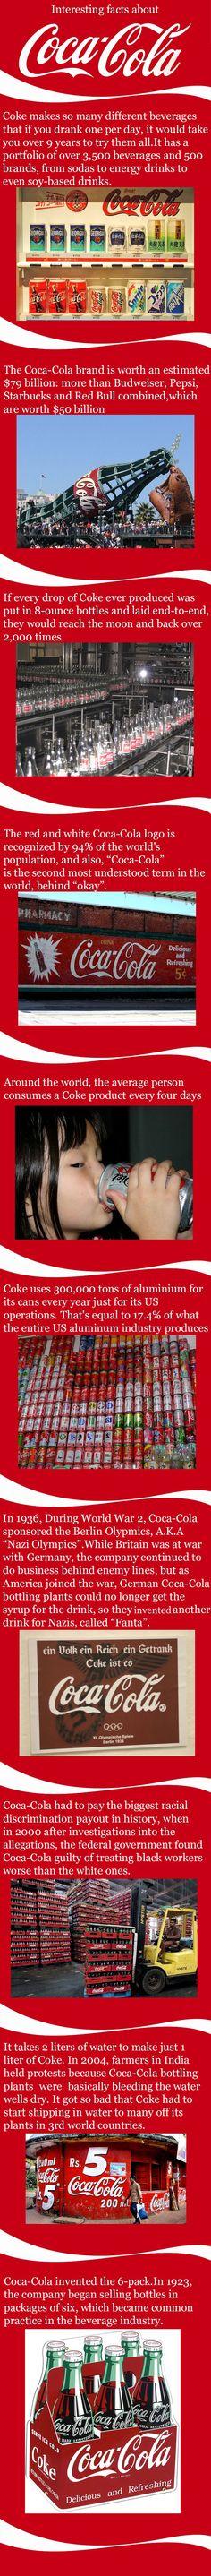 Interesting Coke facts.  // funny pictures - funny photos - funny images - funny pics - funny quotes - #lol #humor #funnypictures